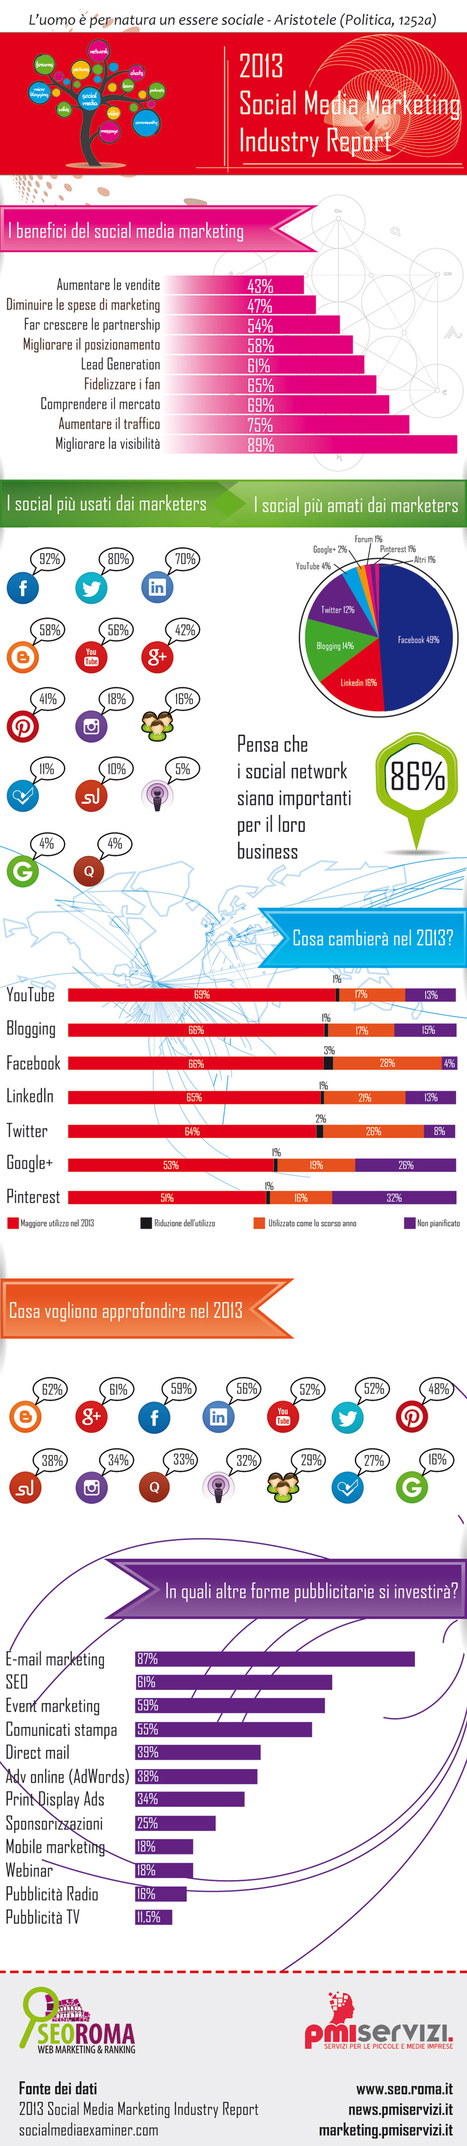 Aziende e Social Network | Social Media Marketing Industry Report 2013 Infographic | StartupGirl | News, tips, tools for startups and innovative companies | Scoop.it